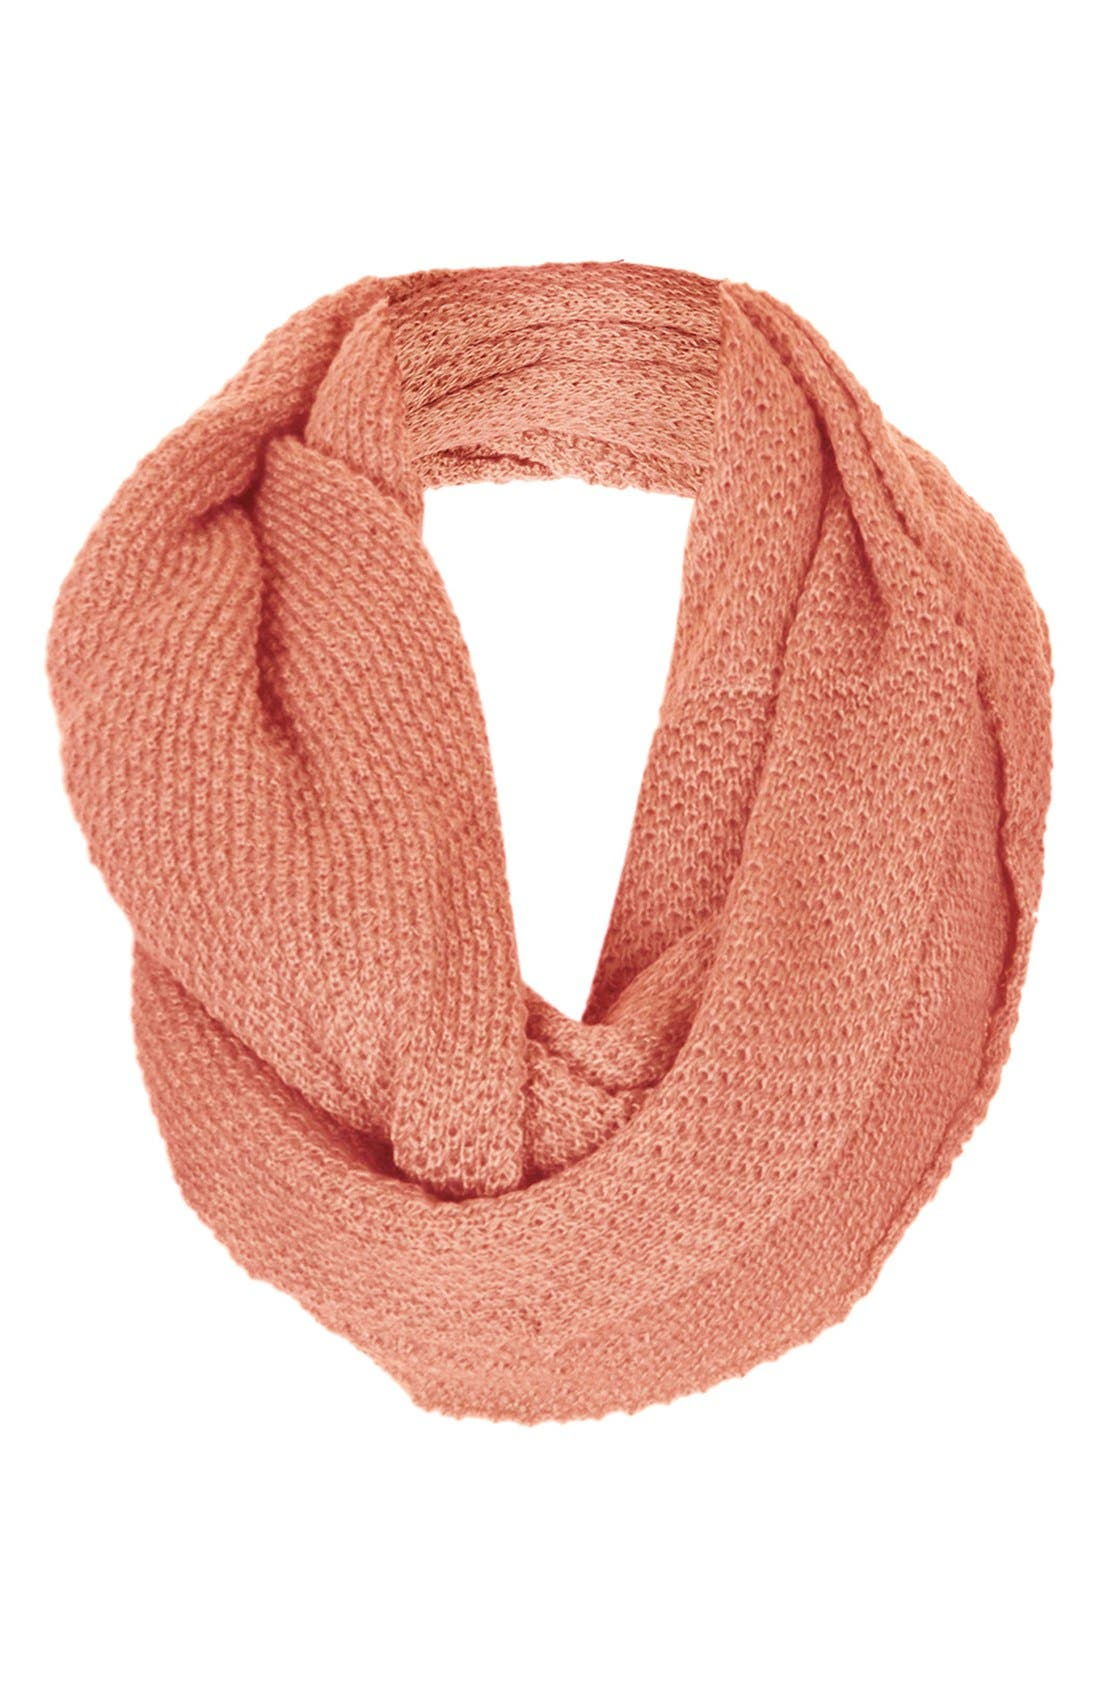 Alternate Image 1 Selected - Topshop Basket Stitch Infinity Scarf